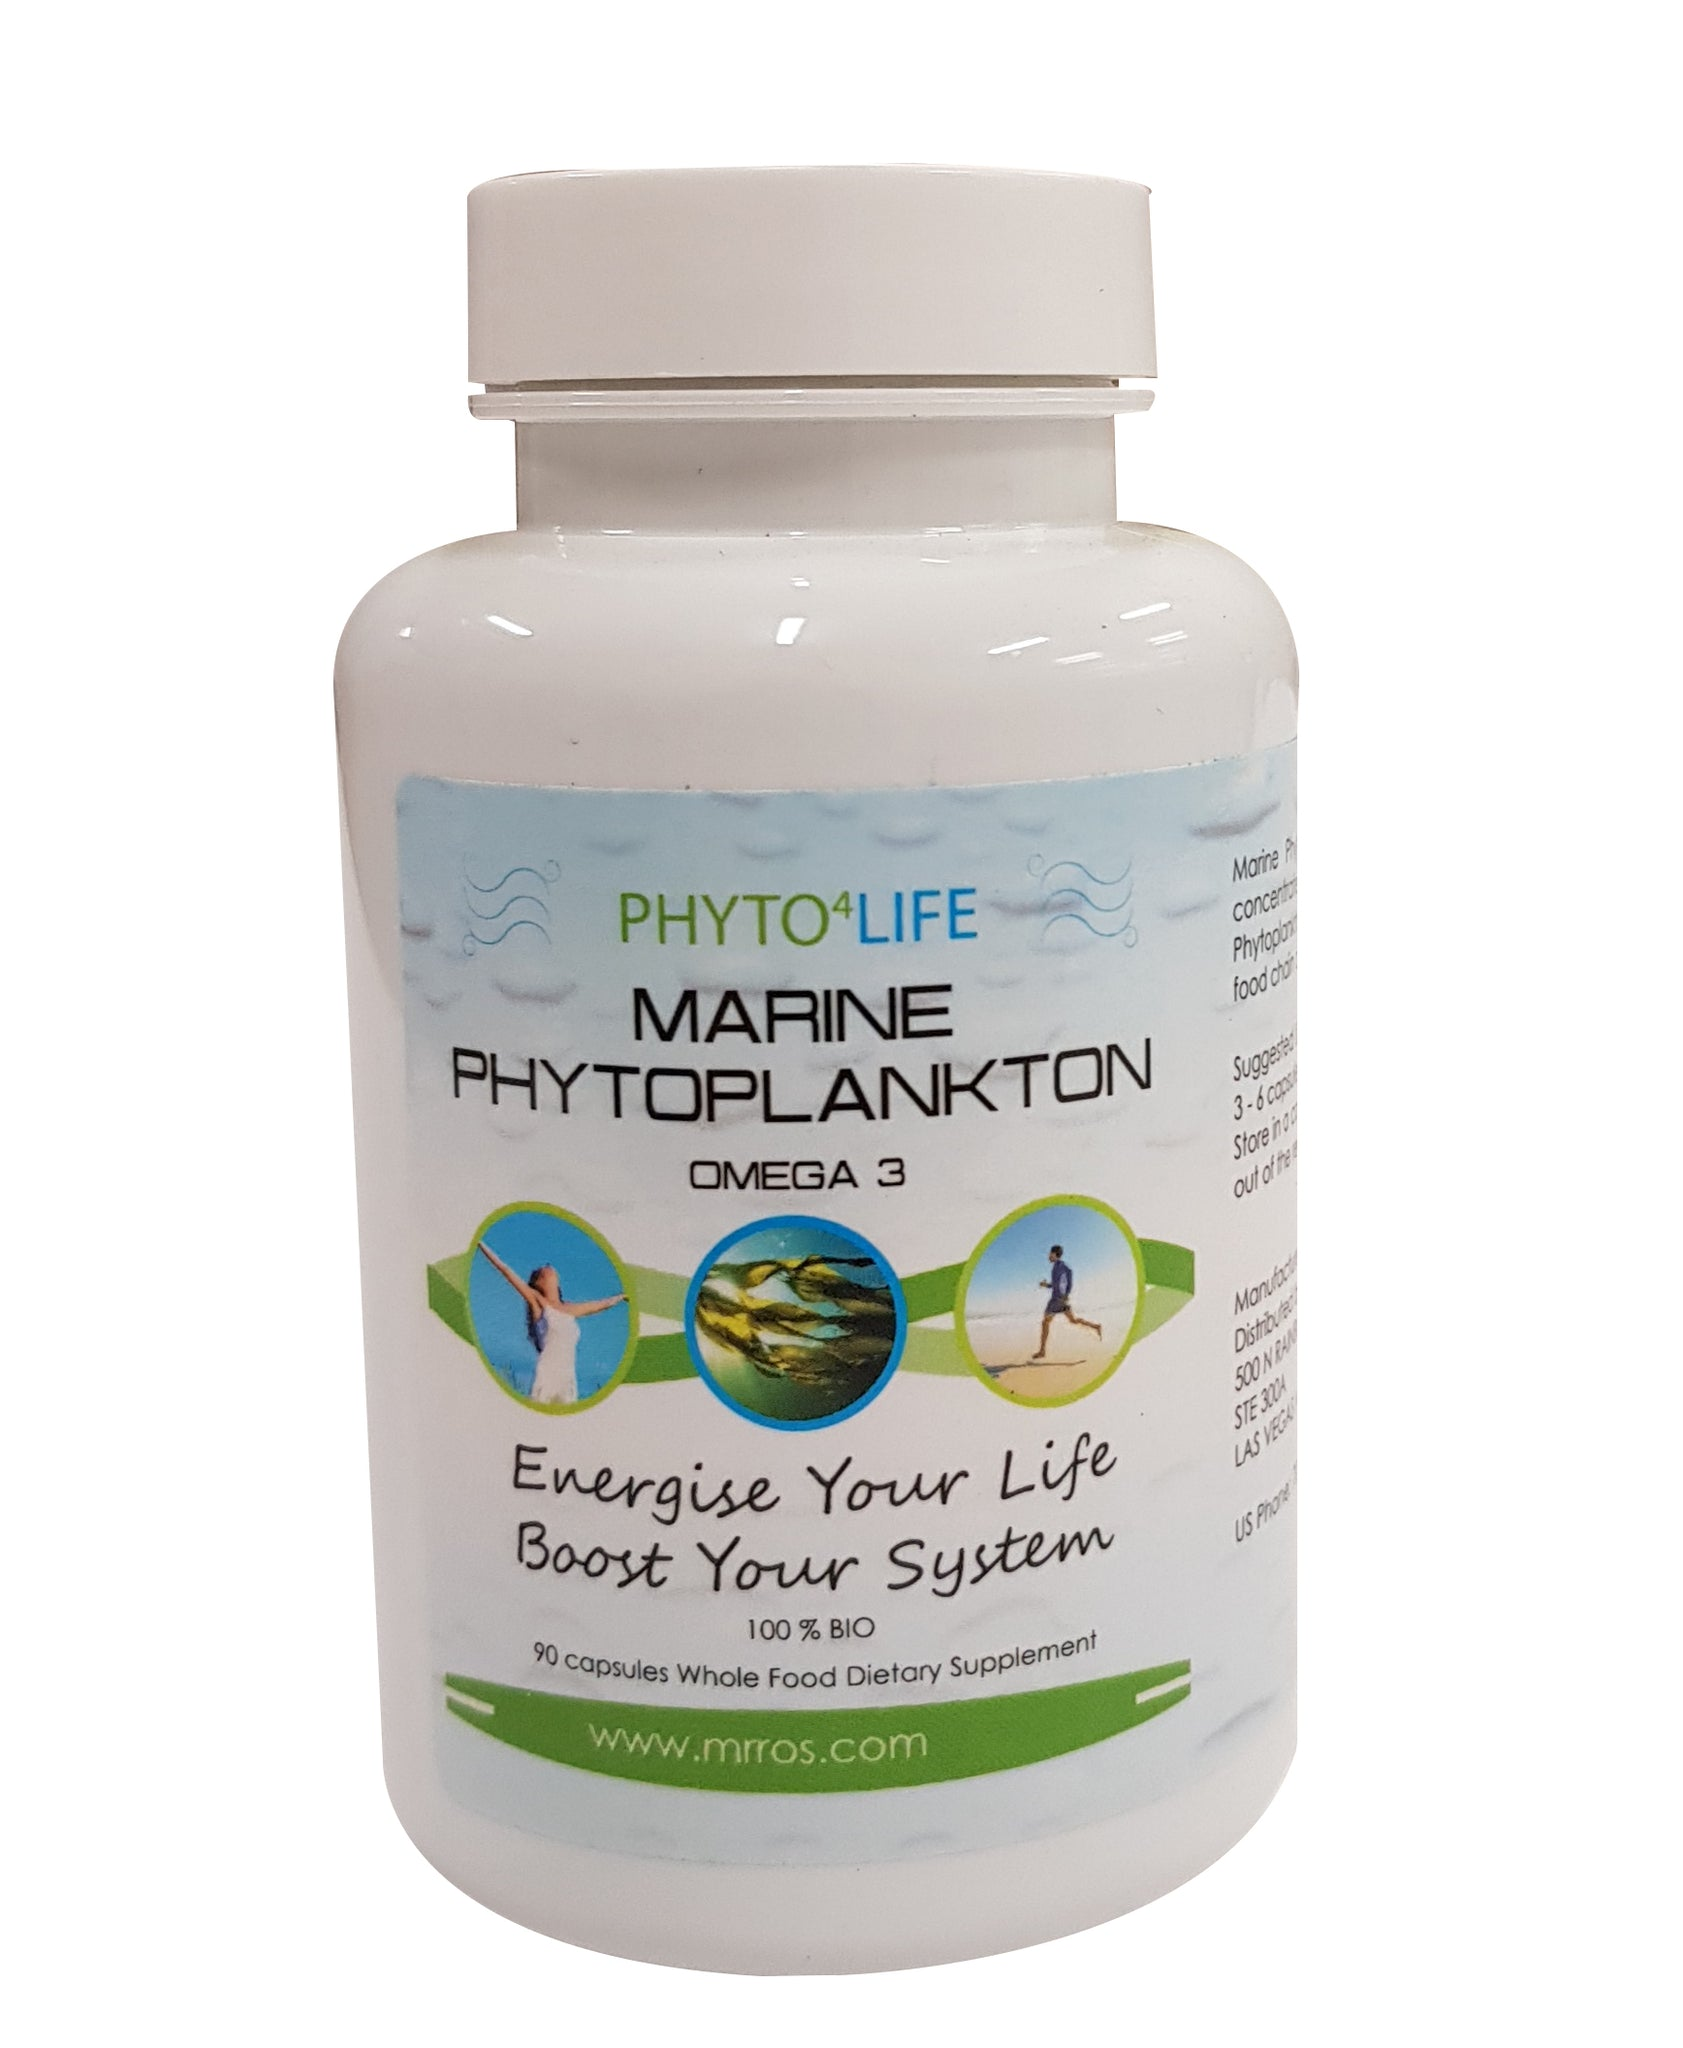 Mr Ros Marine Phytoplankton-Vegan Omega 3- Vegan EPA-Essential Fatty Acids-All Potent Superfood - Mr Ros Natural Premium Superfoods